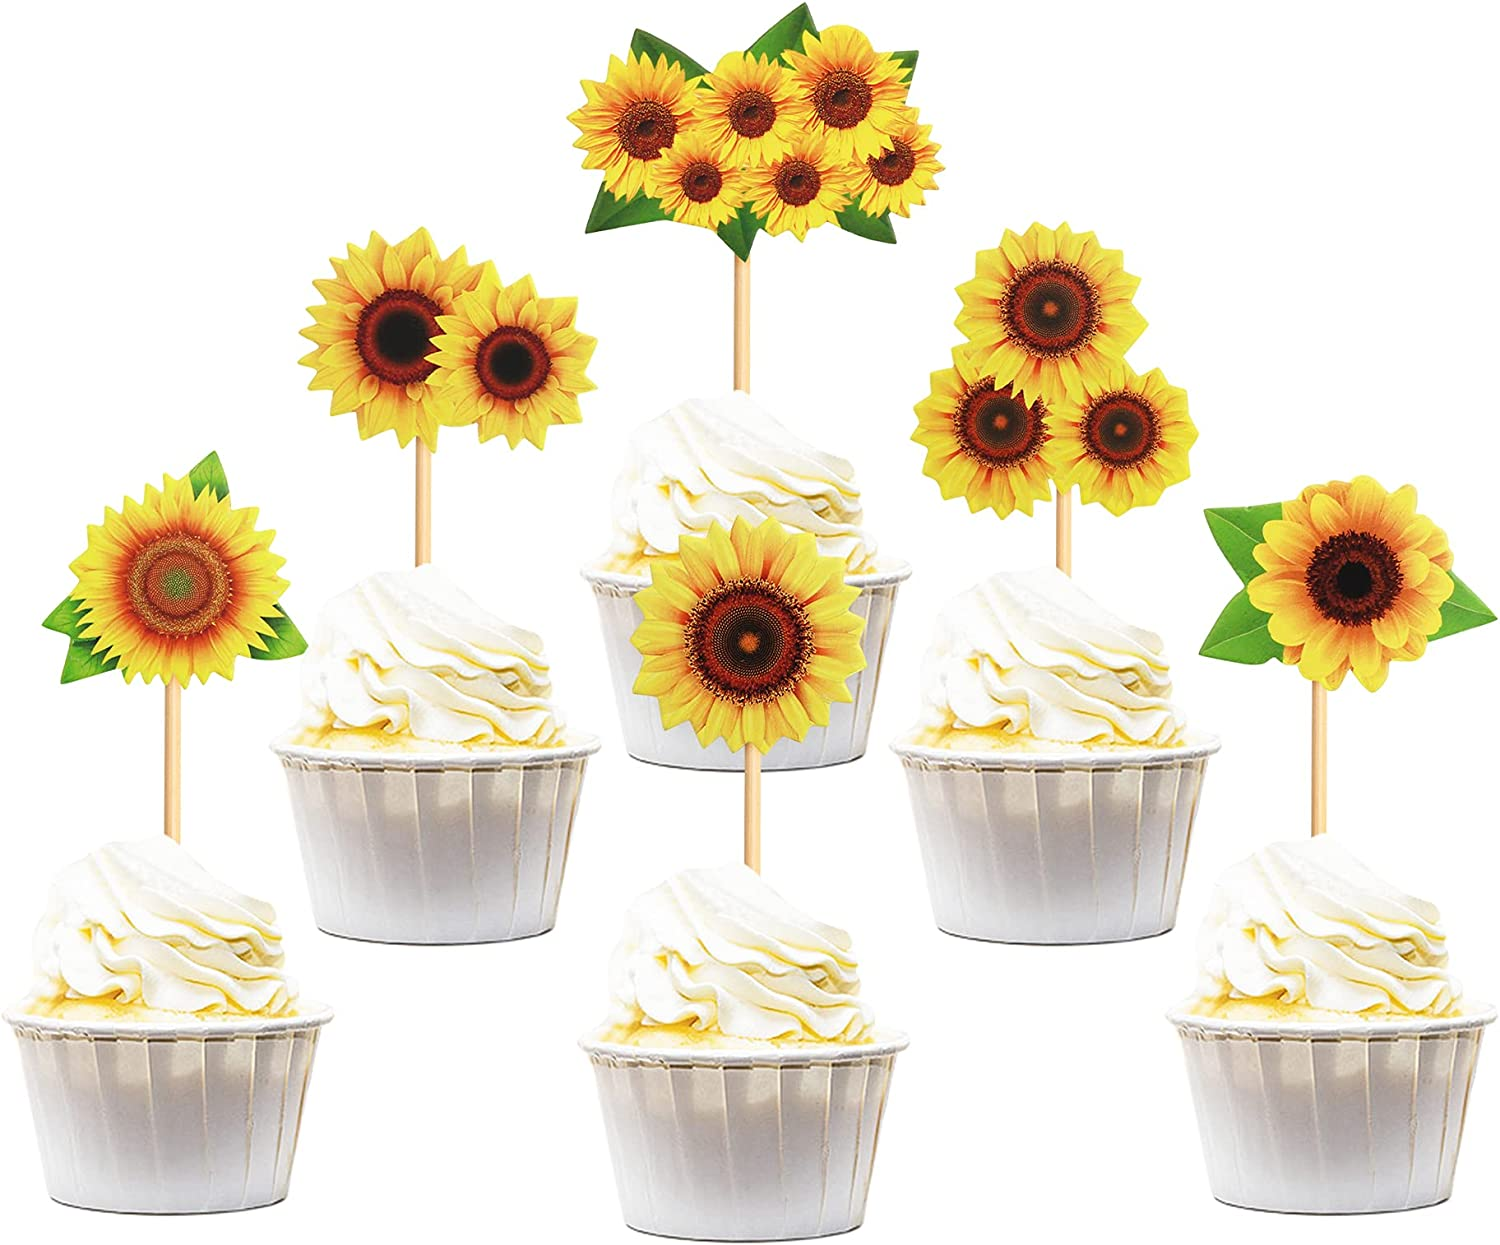 Keaziu 36 Pack Sunflower Selling Cupcake Party Themed Genuine Toppers for Flower